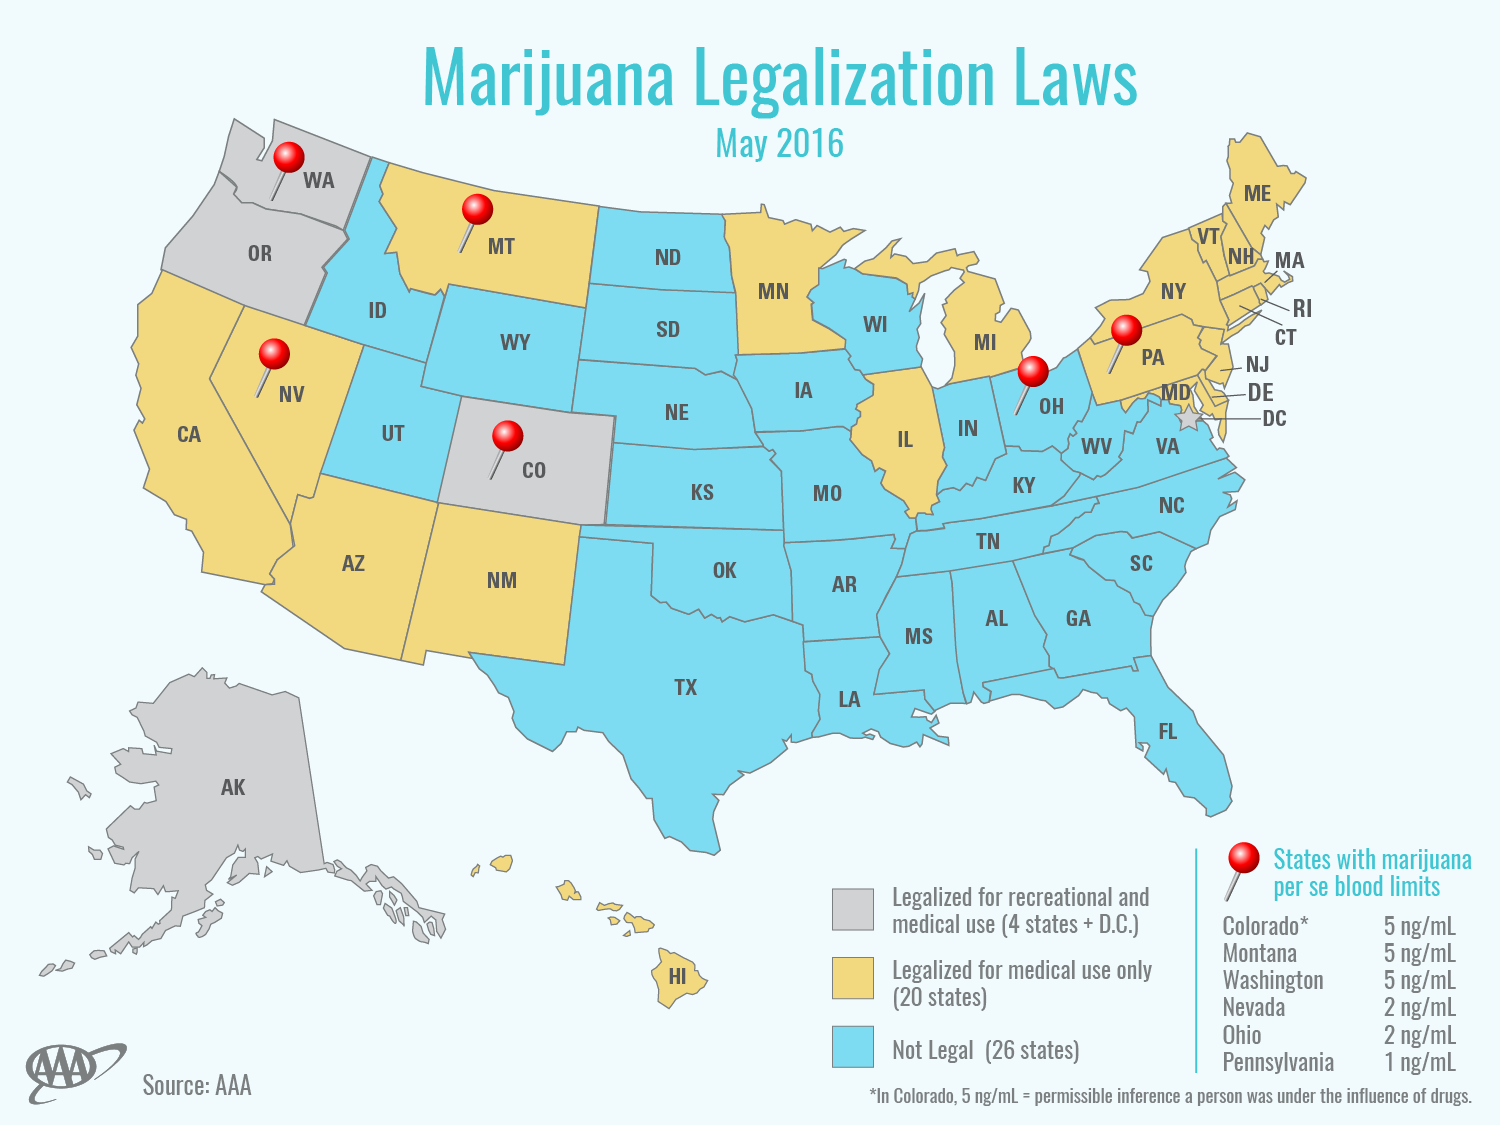 marijuana and its legalization The term medical marijuana refers to using the whole, unprocessed marijuana plant or its basic extracts to treat symptoms of illness and other conditions the us food and drug administration (fda) has not recognized or approved the marijuana plant as medicine.